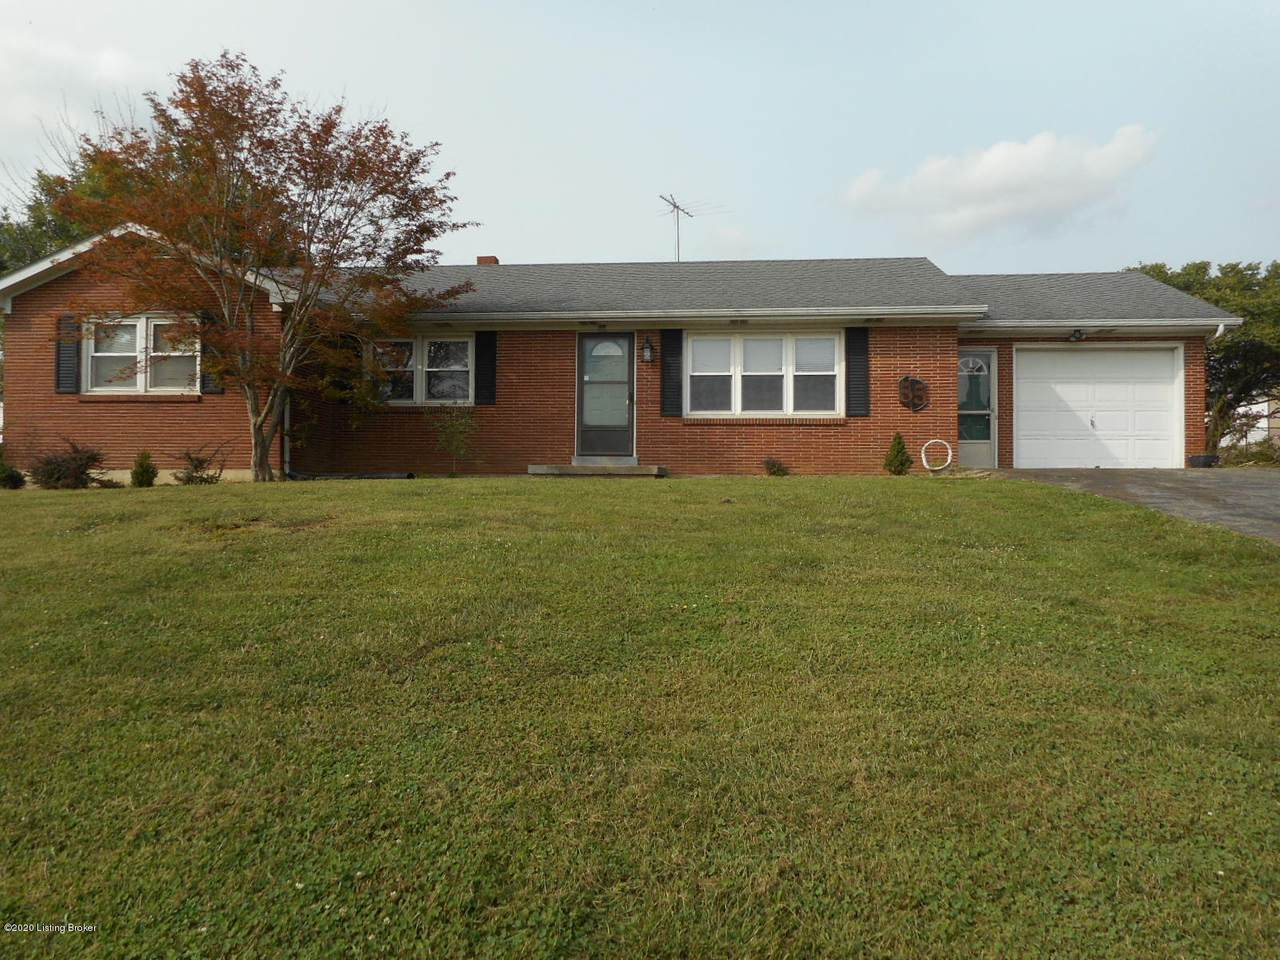 55 Vickie Dr - Photo 1